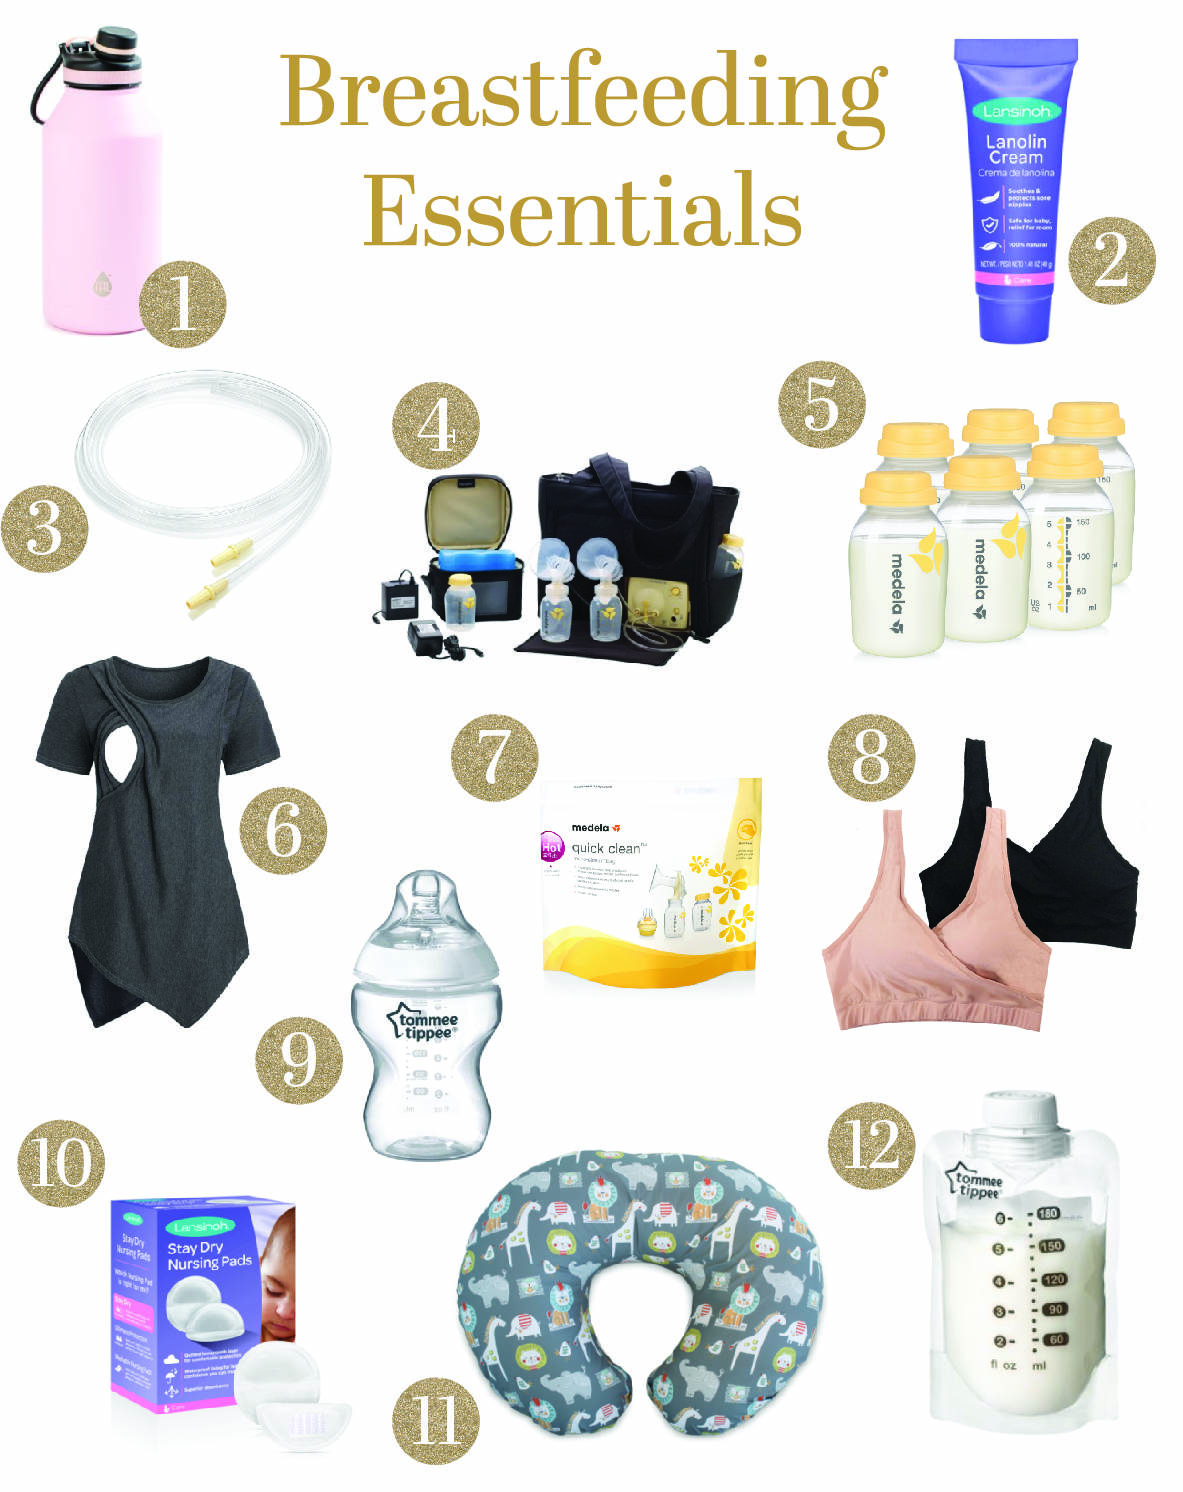 My Breastfeeding Essentials & Journey by popular Dallas life and style blog, Glamorous Versatility: collage image of Boppy pillow, nursing top, nursing bras, Medela bottles, Lansinoh Lanolin cream, breast pumping kit, Tommee Tippee bottle, Medela sanitizing bag, Lansinoh nursing pad, Tommee Tippee milk storage bag, water bottle and extra breast pumping parts.